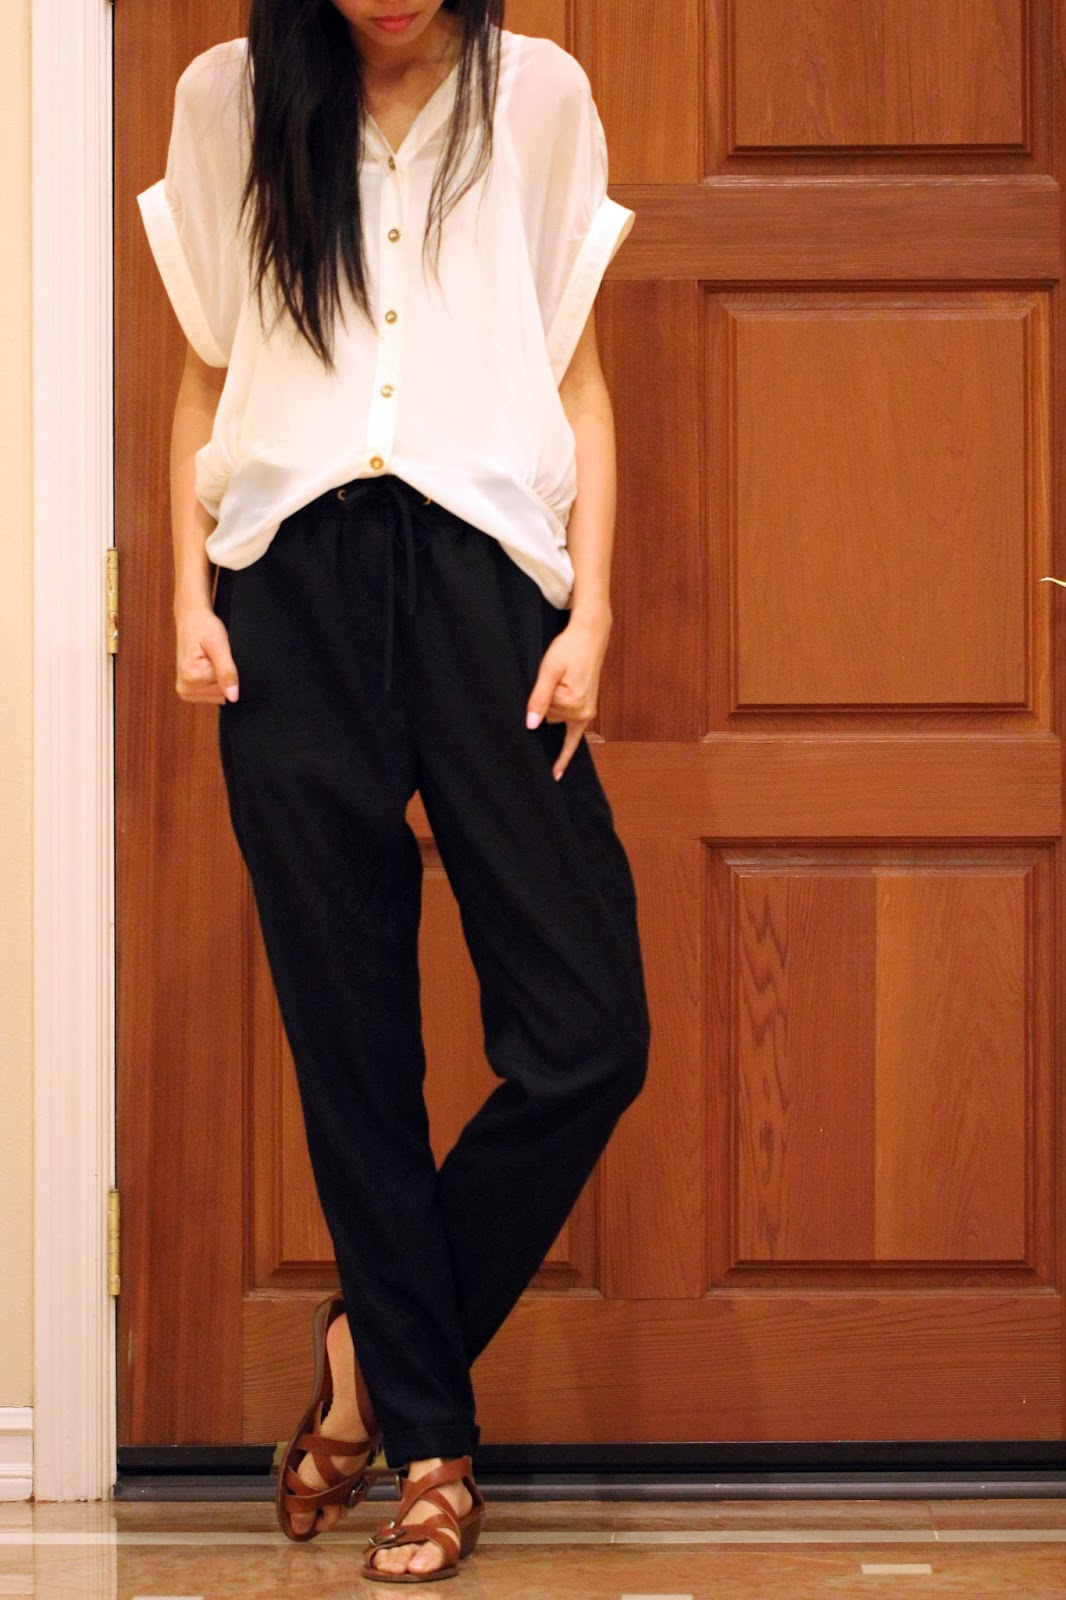 Shop a full selection of Structured Pants plus get fashion tips from FP Me stylists worldwide! Buy now and get free shipping – see site for details.